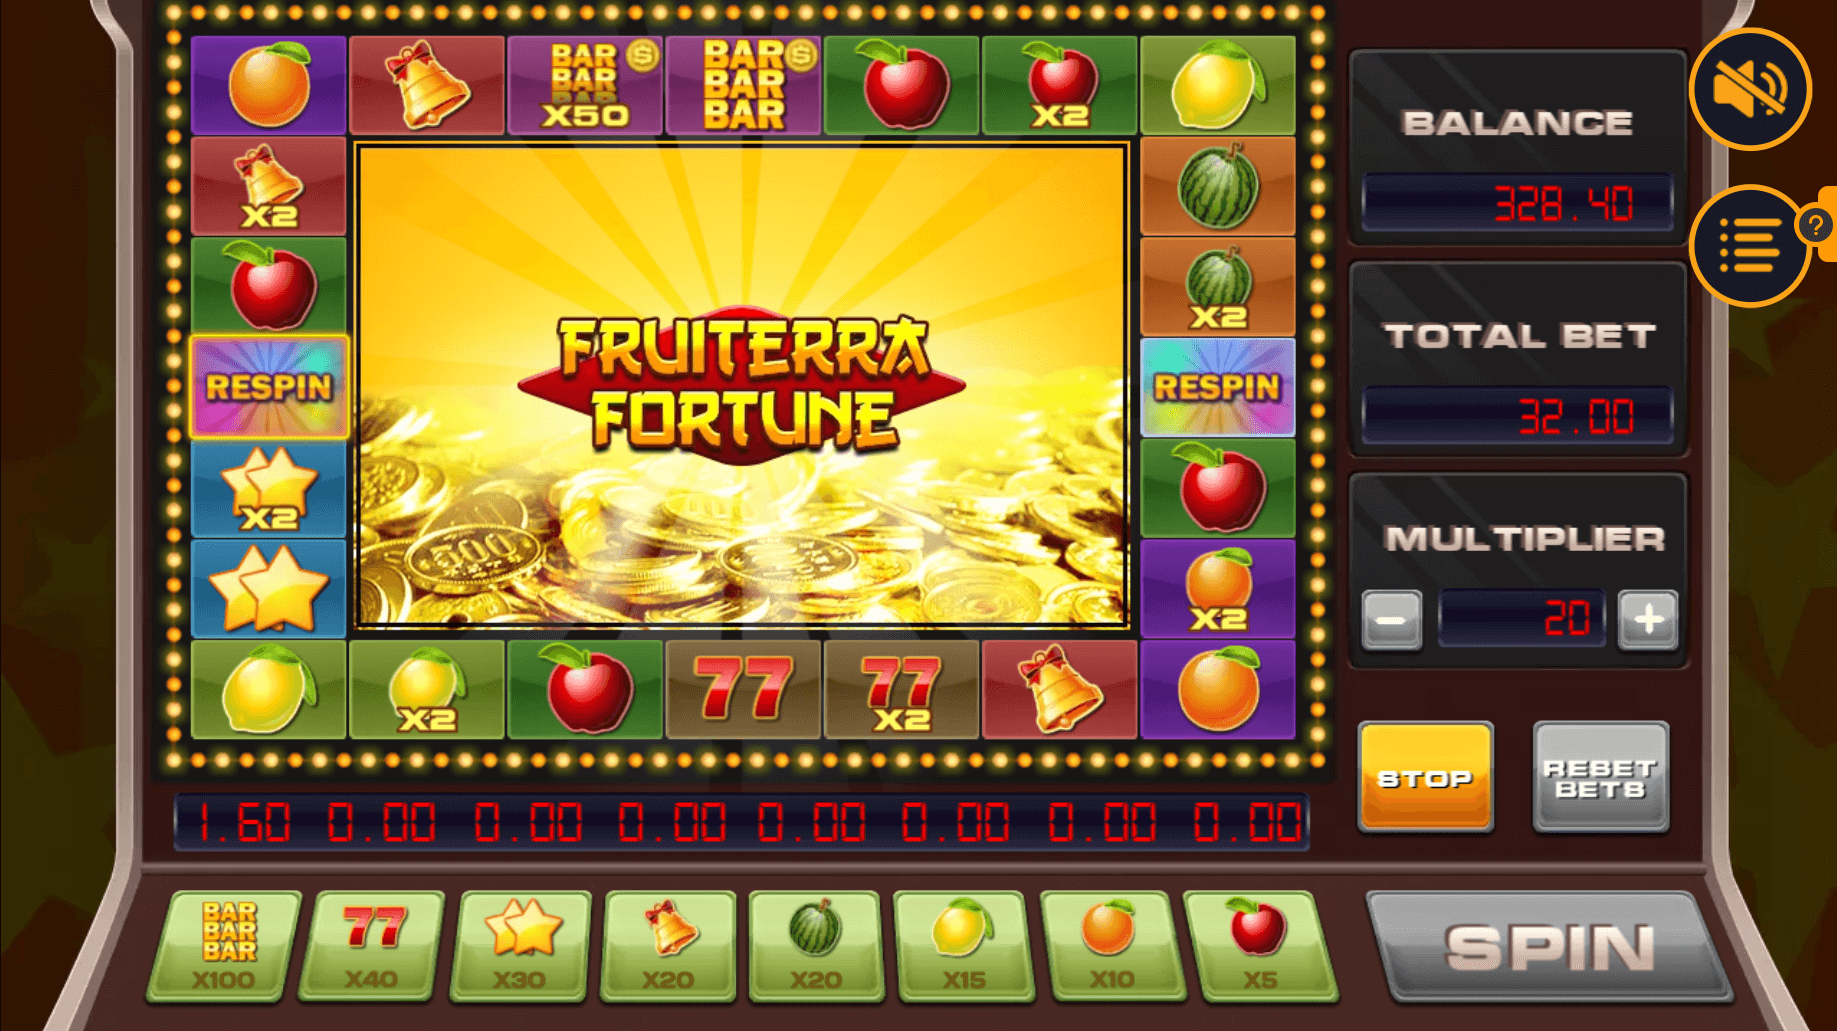 Spiele Fruiterra Fortune - Video Slots Online